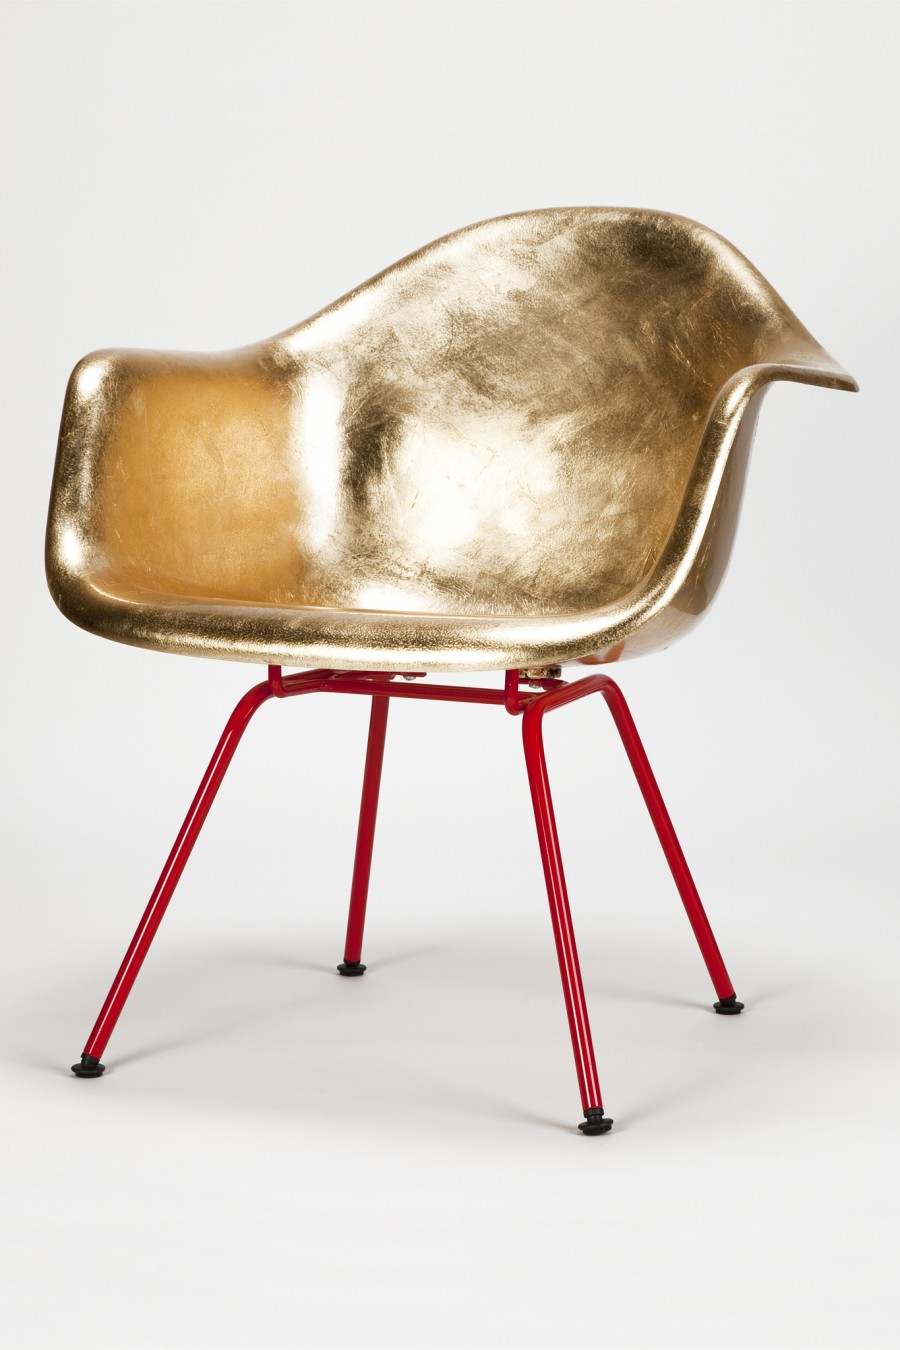 Eames and Jacobsen Go Goldy Gold by Reha Okay - on flodeau.com 04